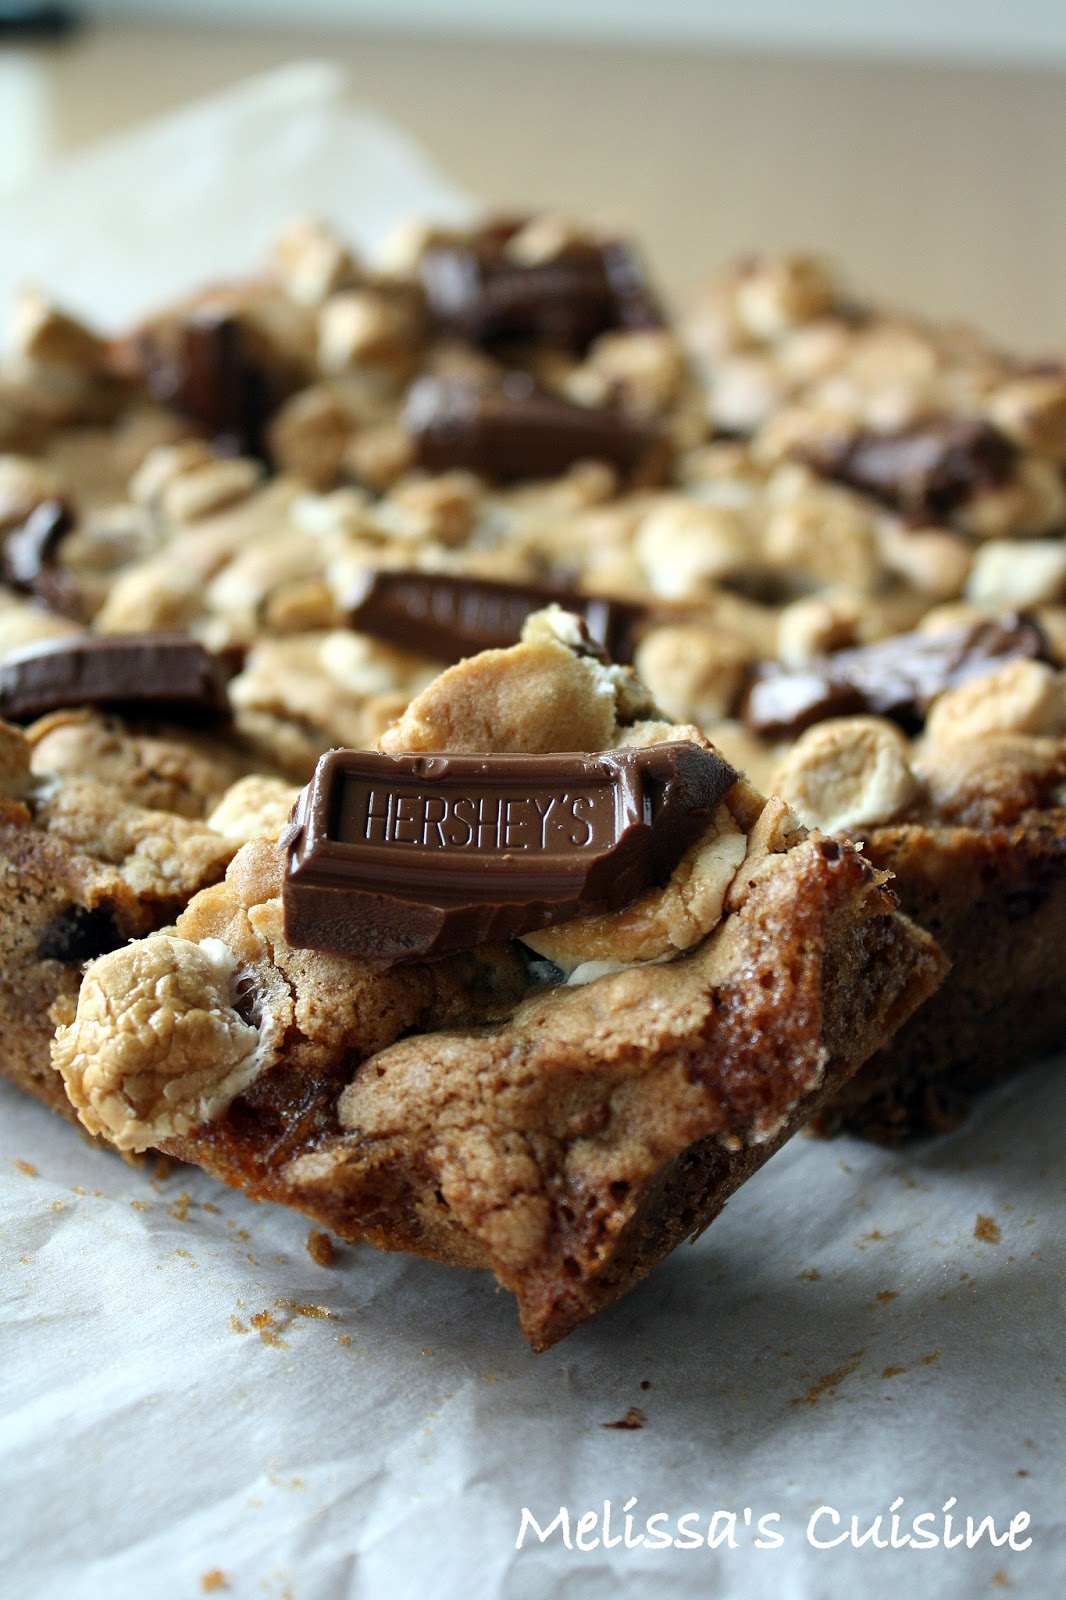 Melissa's Cuisine: S'mores Bars